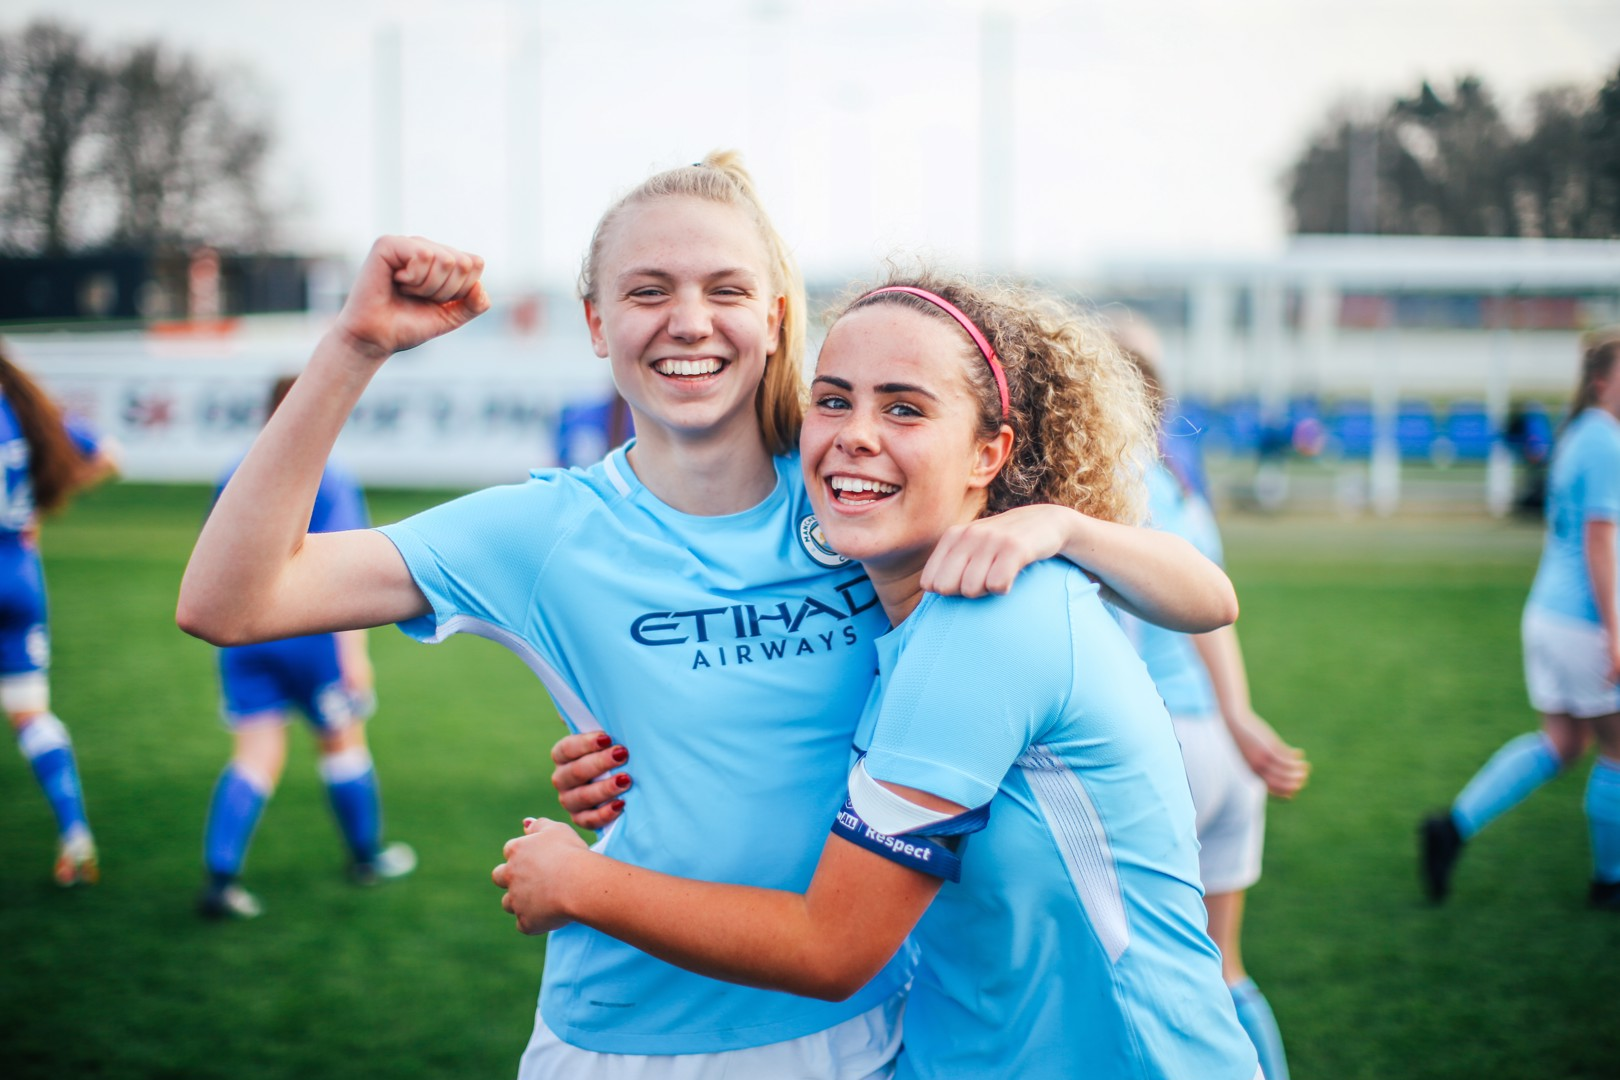 MCWFC Regional Talent Club trials